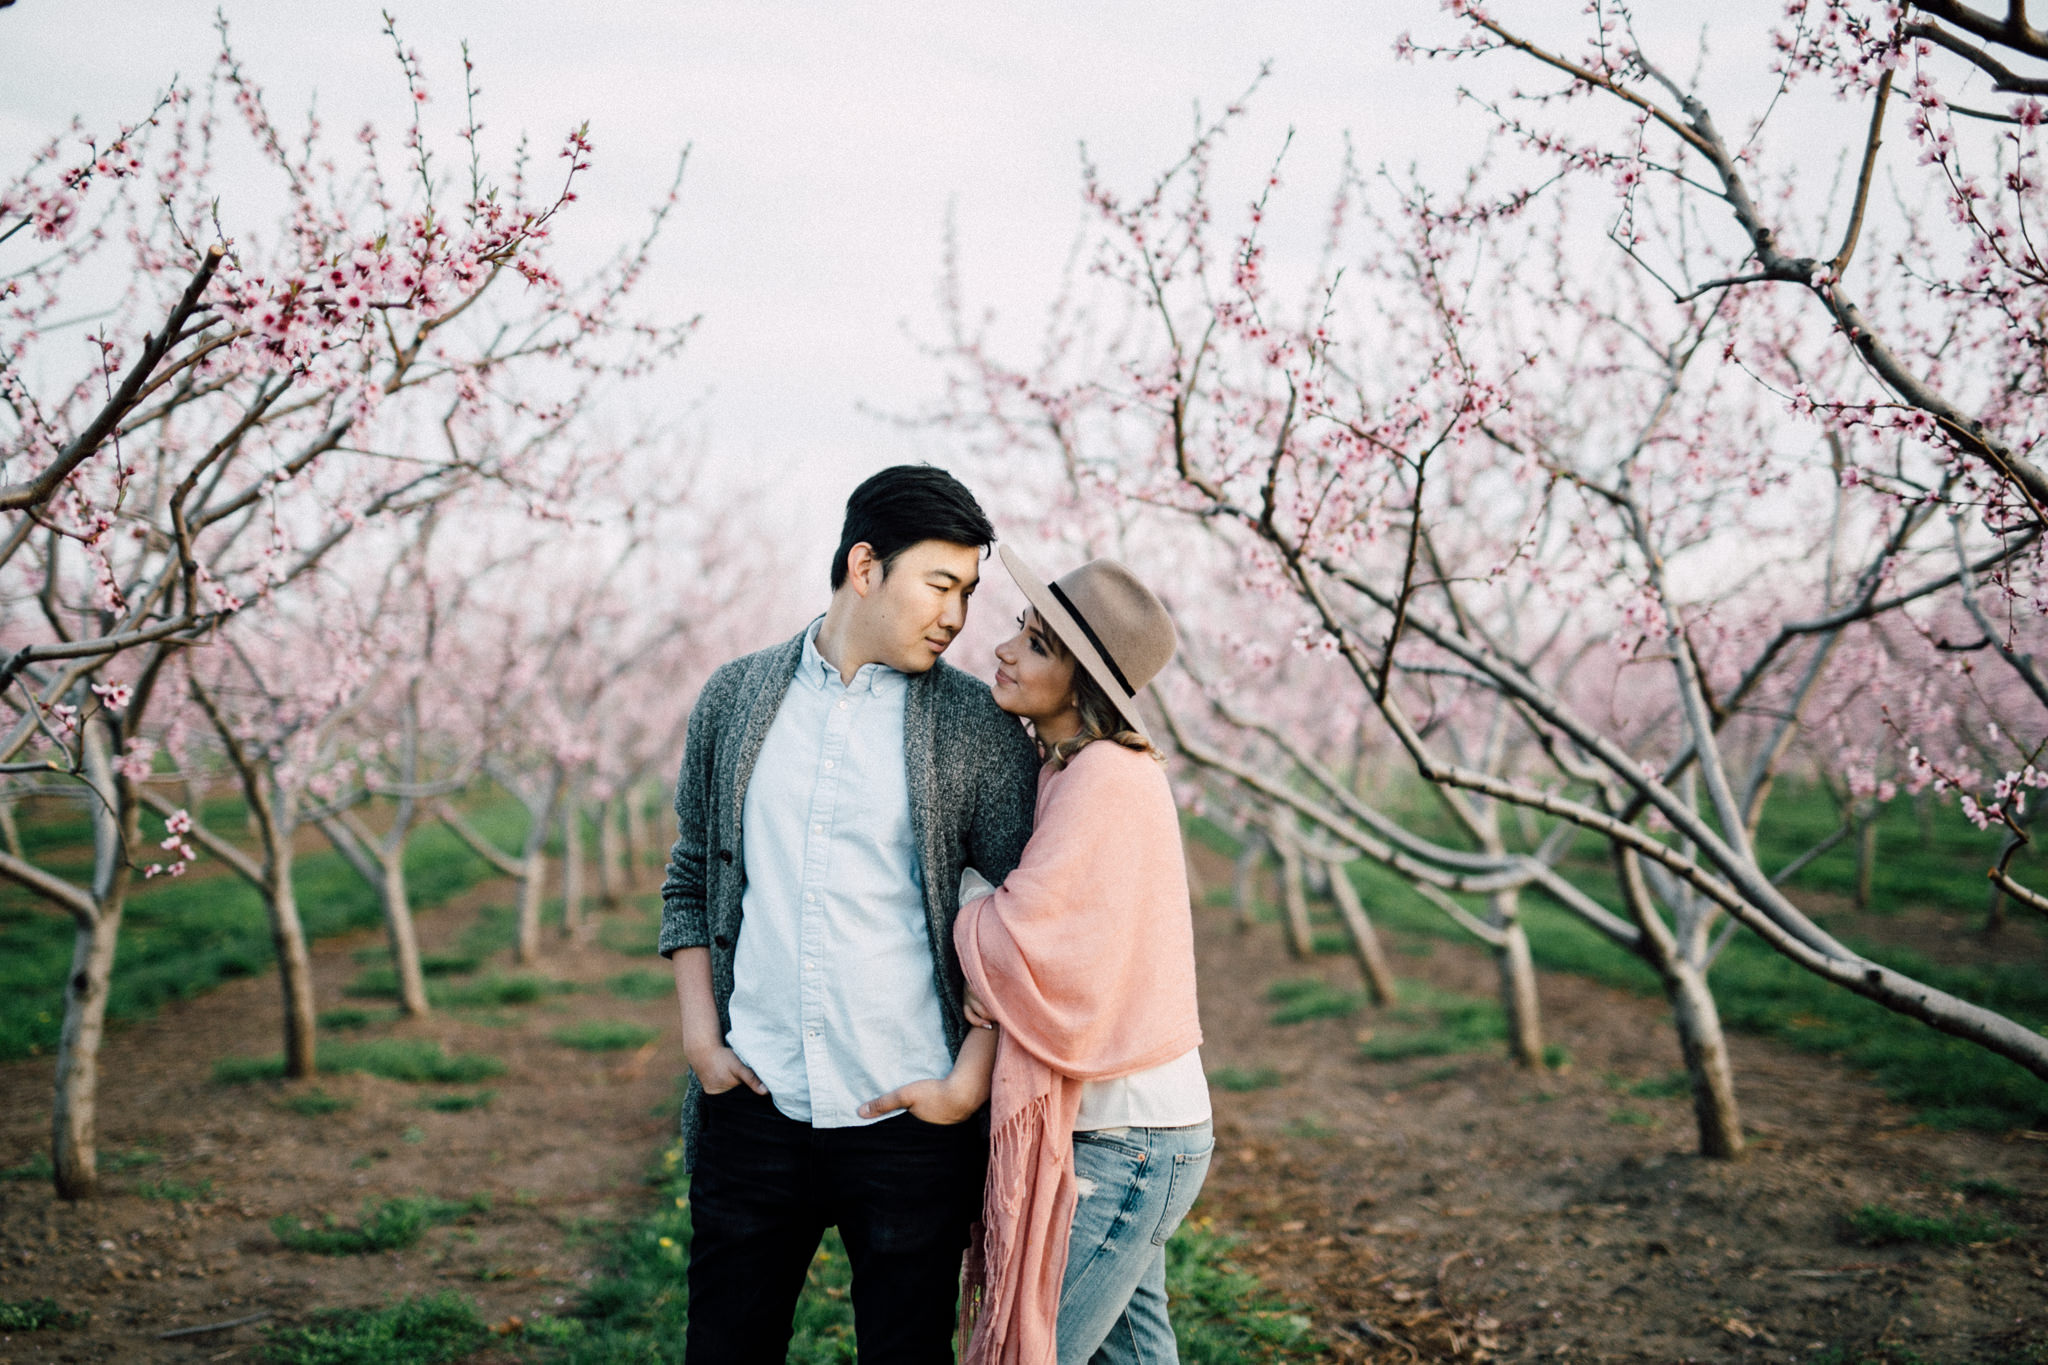 Niagara-Portrait-Session-Niagara-On-The-Lake-Cherry-Blossoms-photography-by-Simply-Lace-Photography-025.JPG